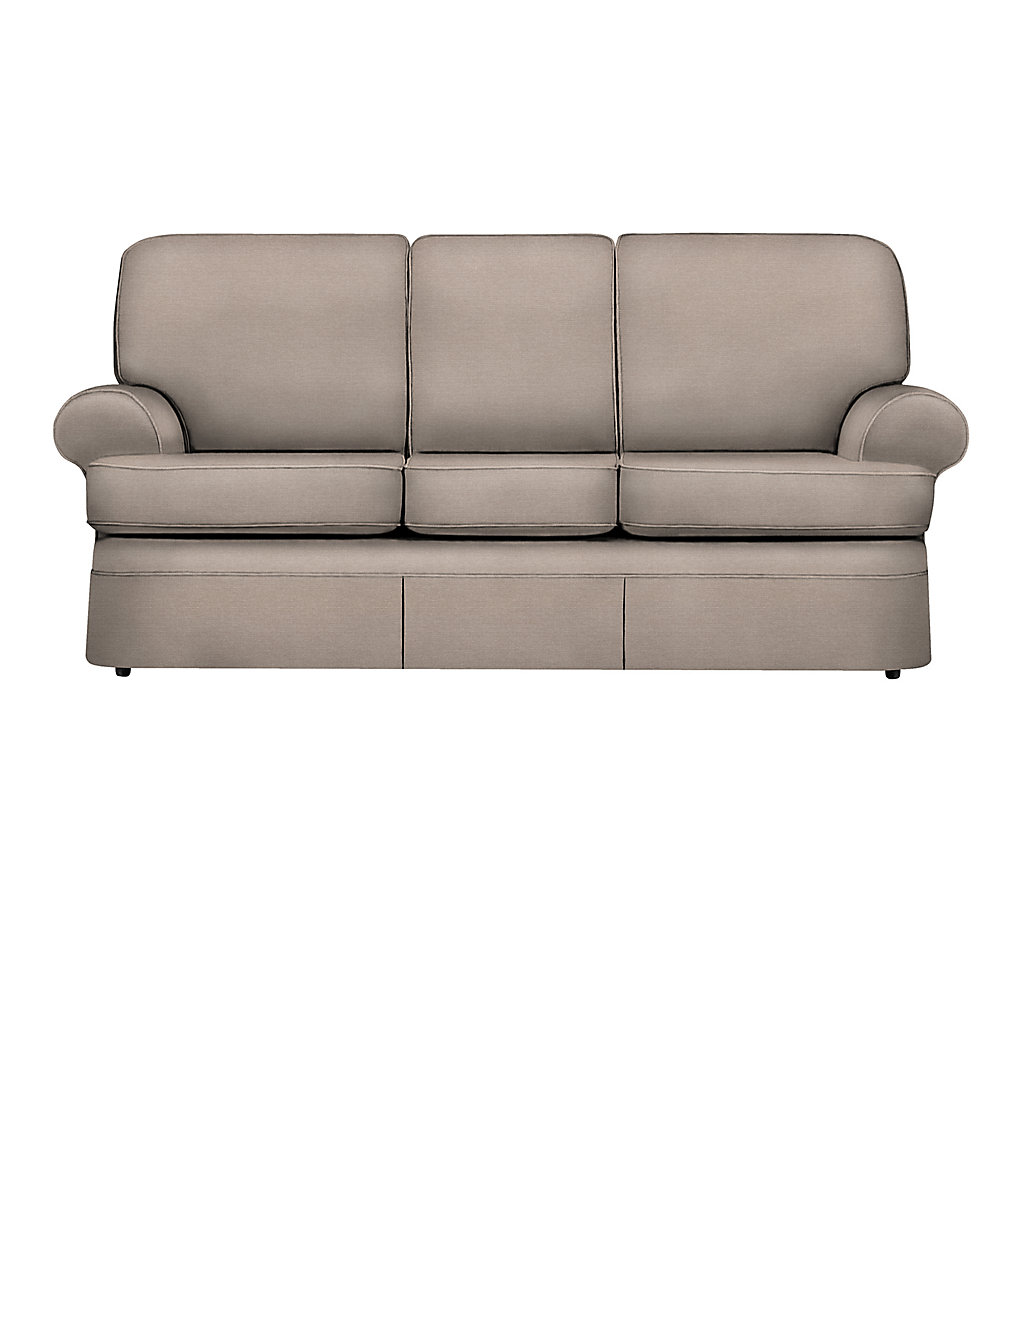 Loose Covers For Marks And Spencer Charlotte Sofa